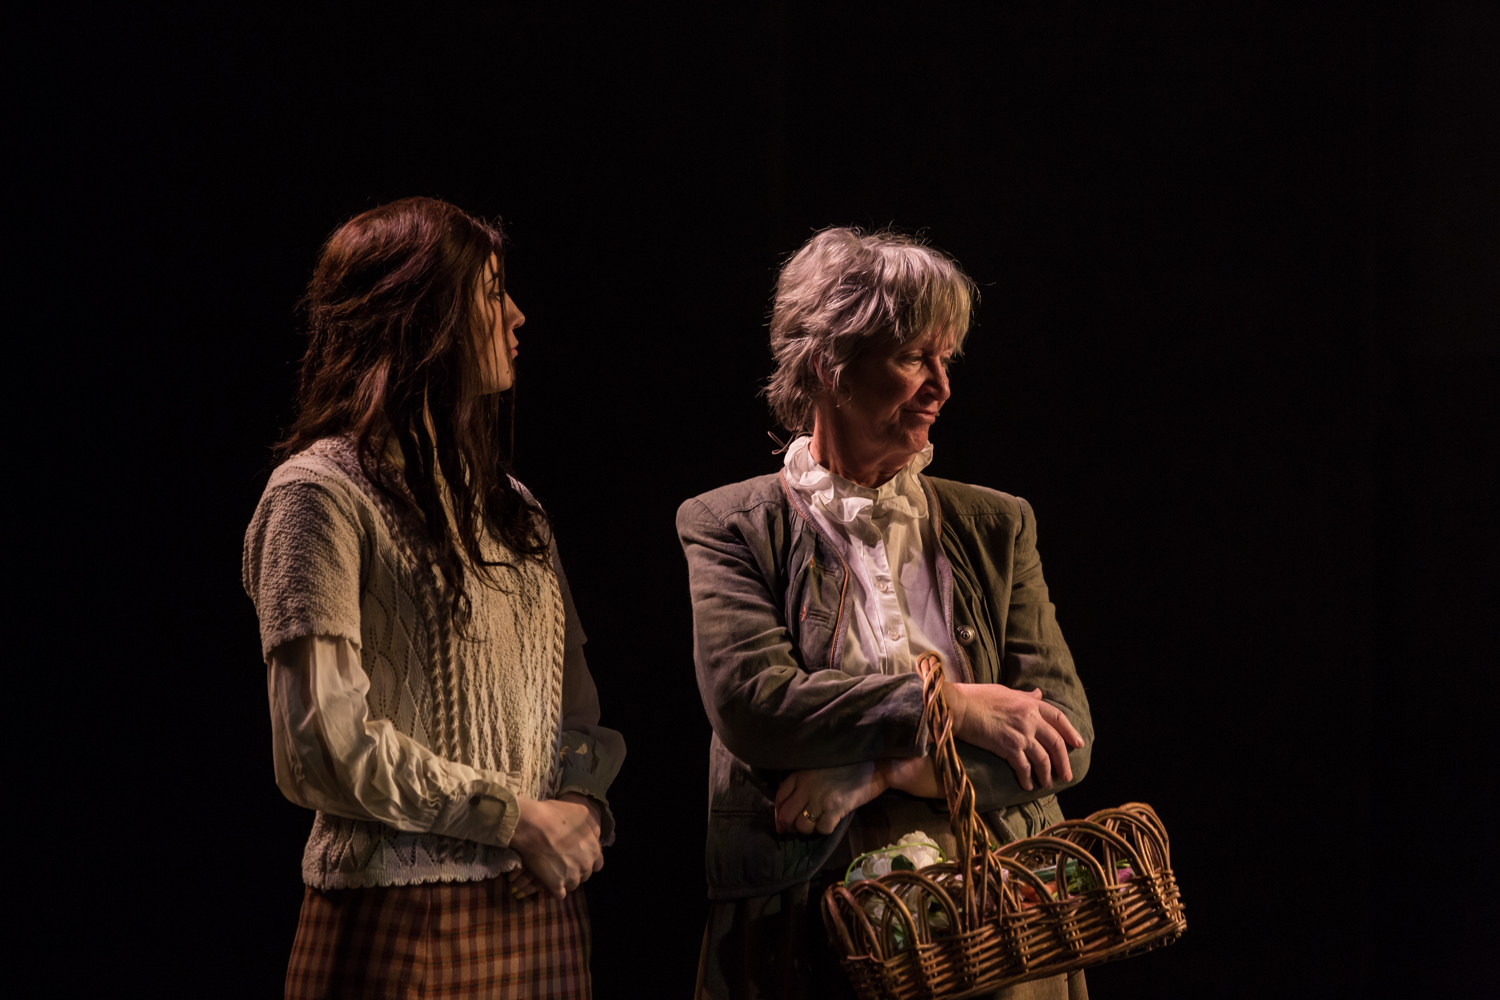 Theatre Production by Michael Scott based on the book by Brinsley MacNamara (Photos Ste Murrary))